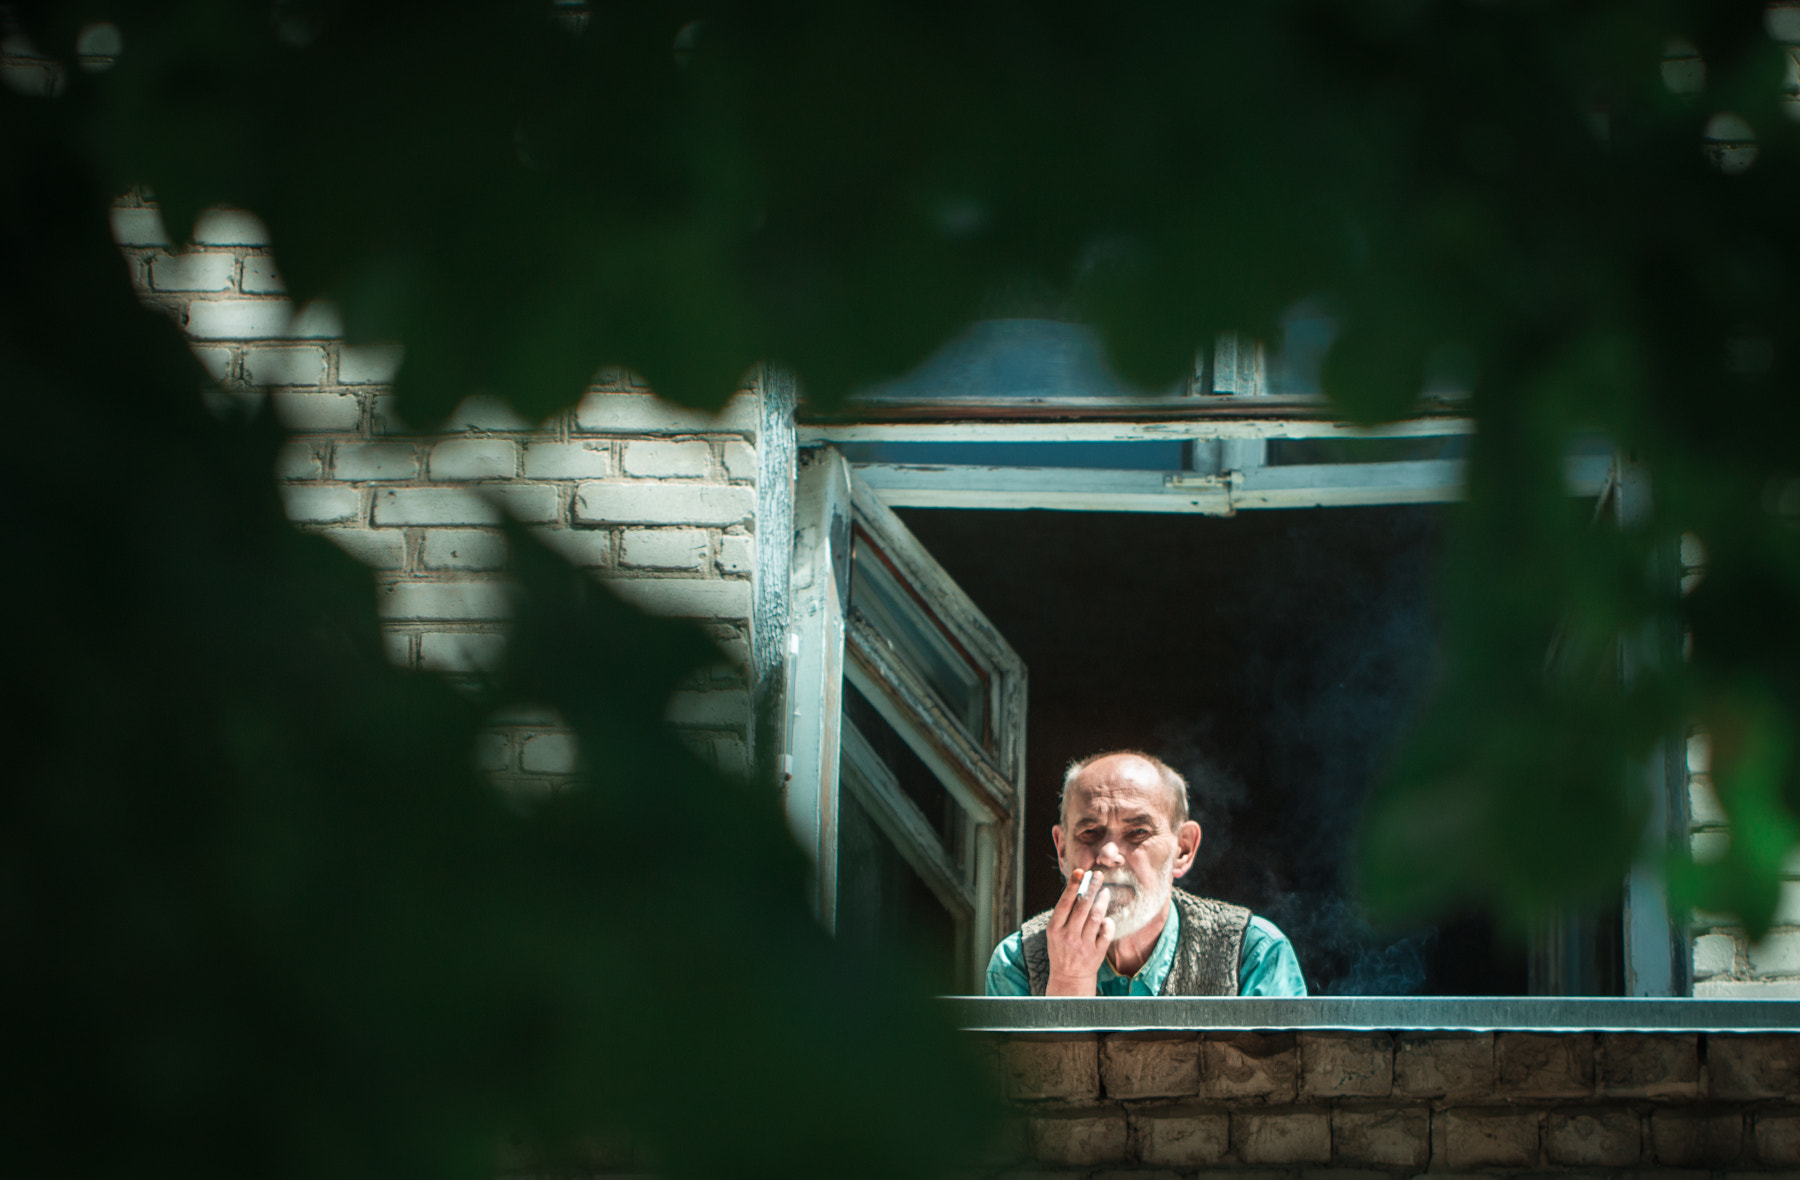 Photograph Smoking by Mikhail Khursevich on 500px